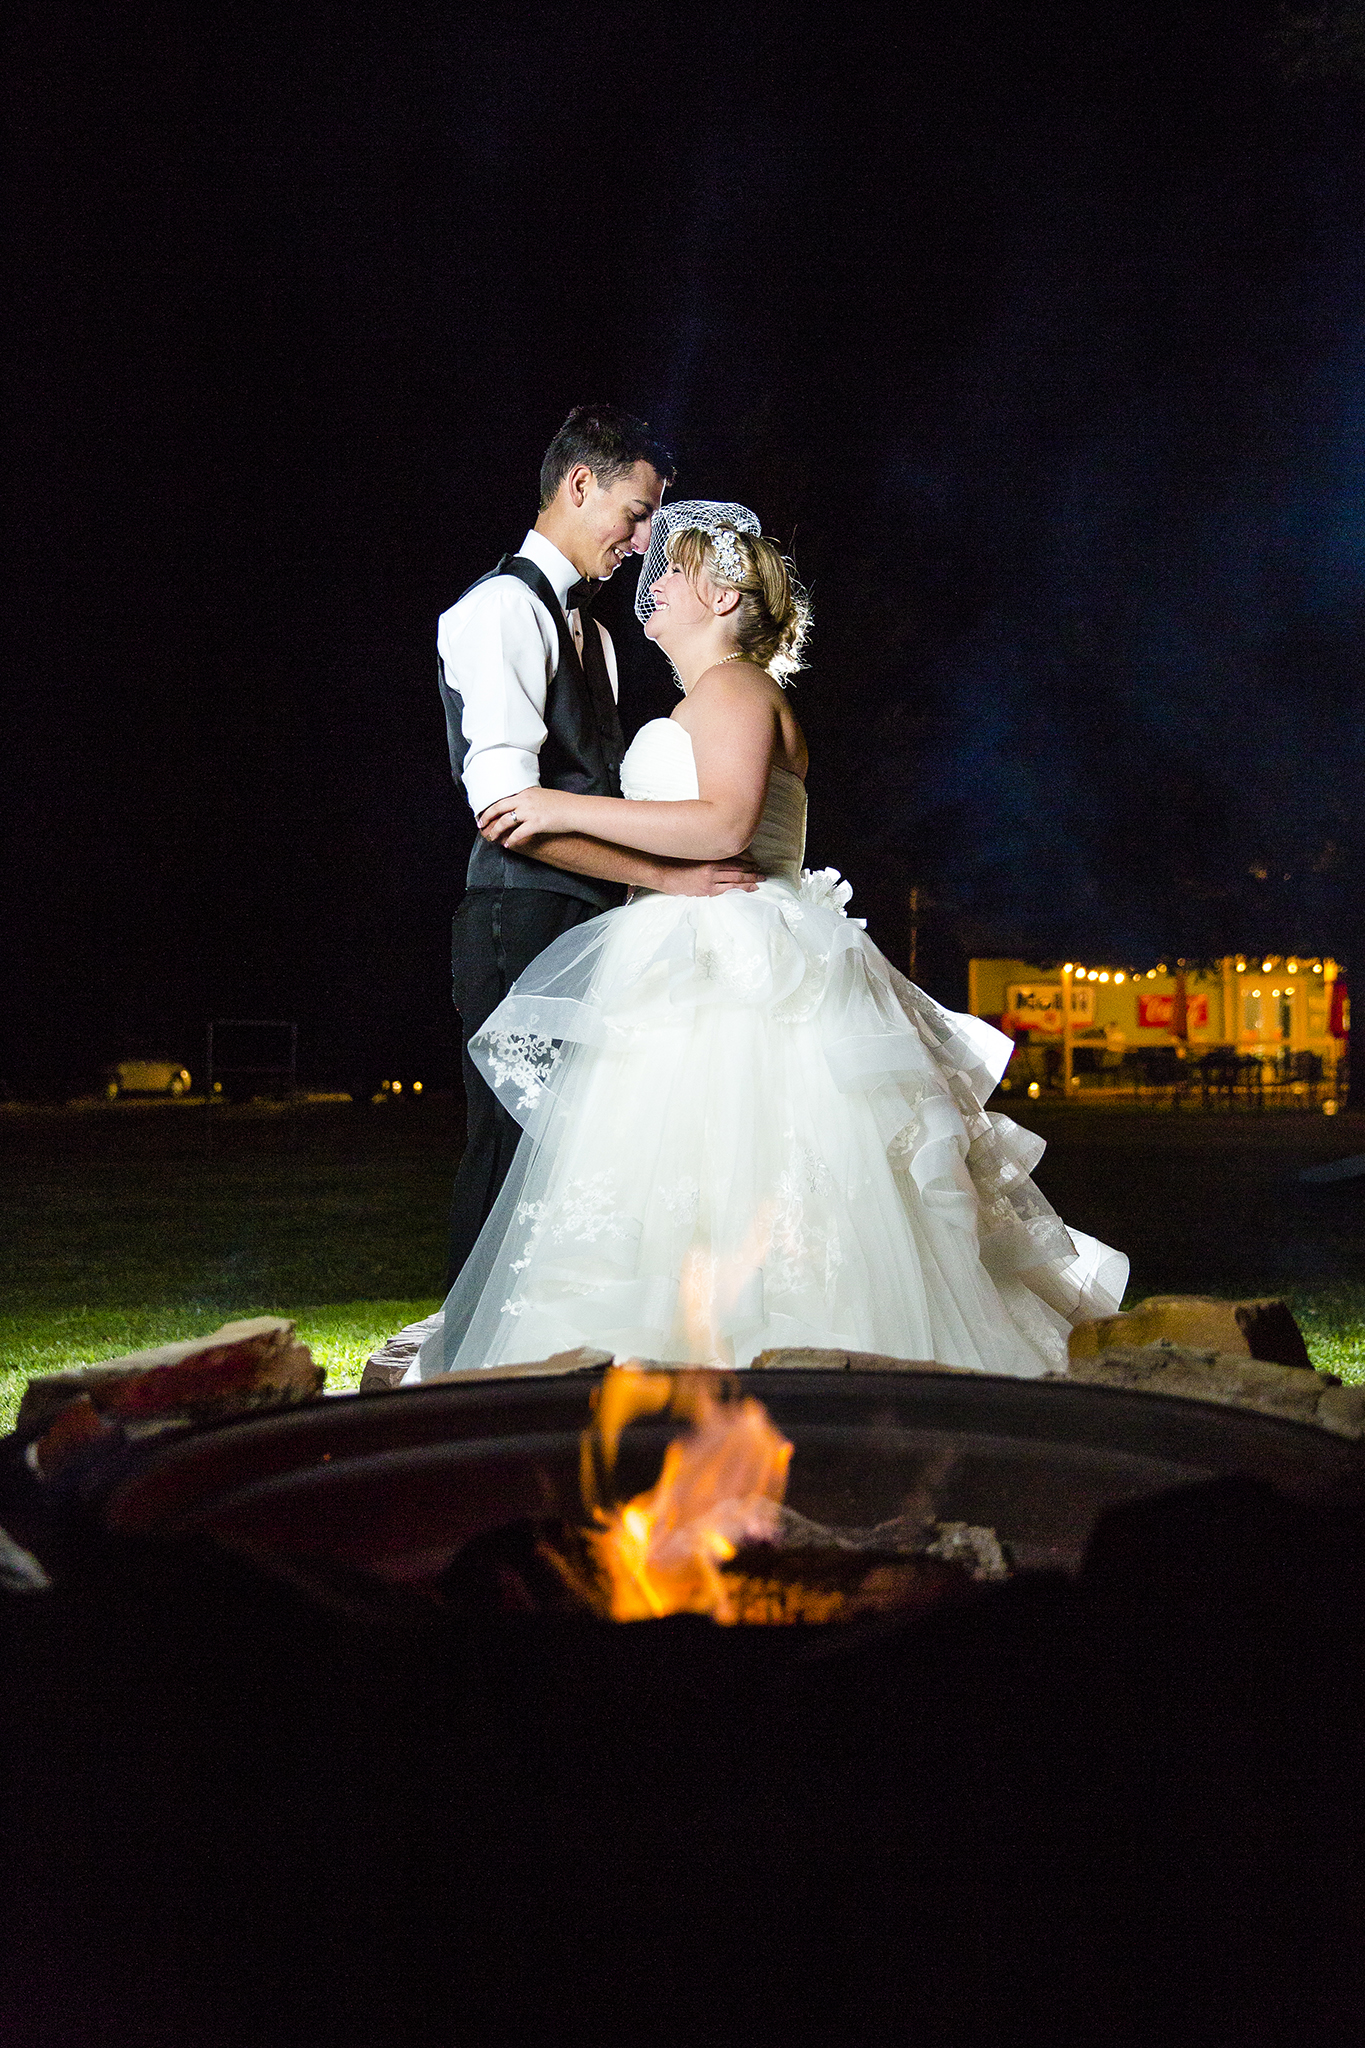 Fire Pit, Bride and Groom, Night Portraits, Dramatic, Edgy, Creative